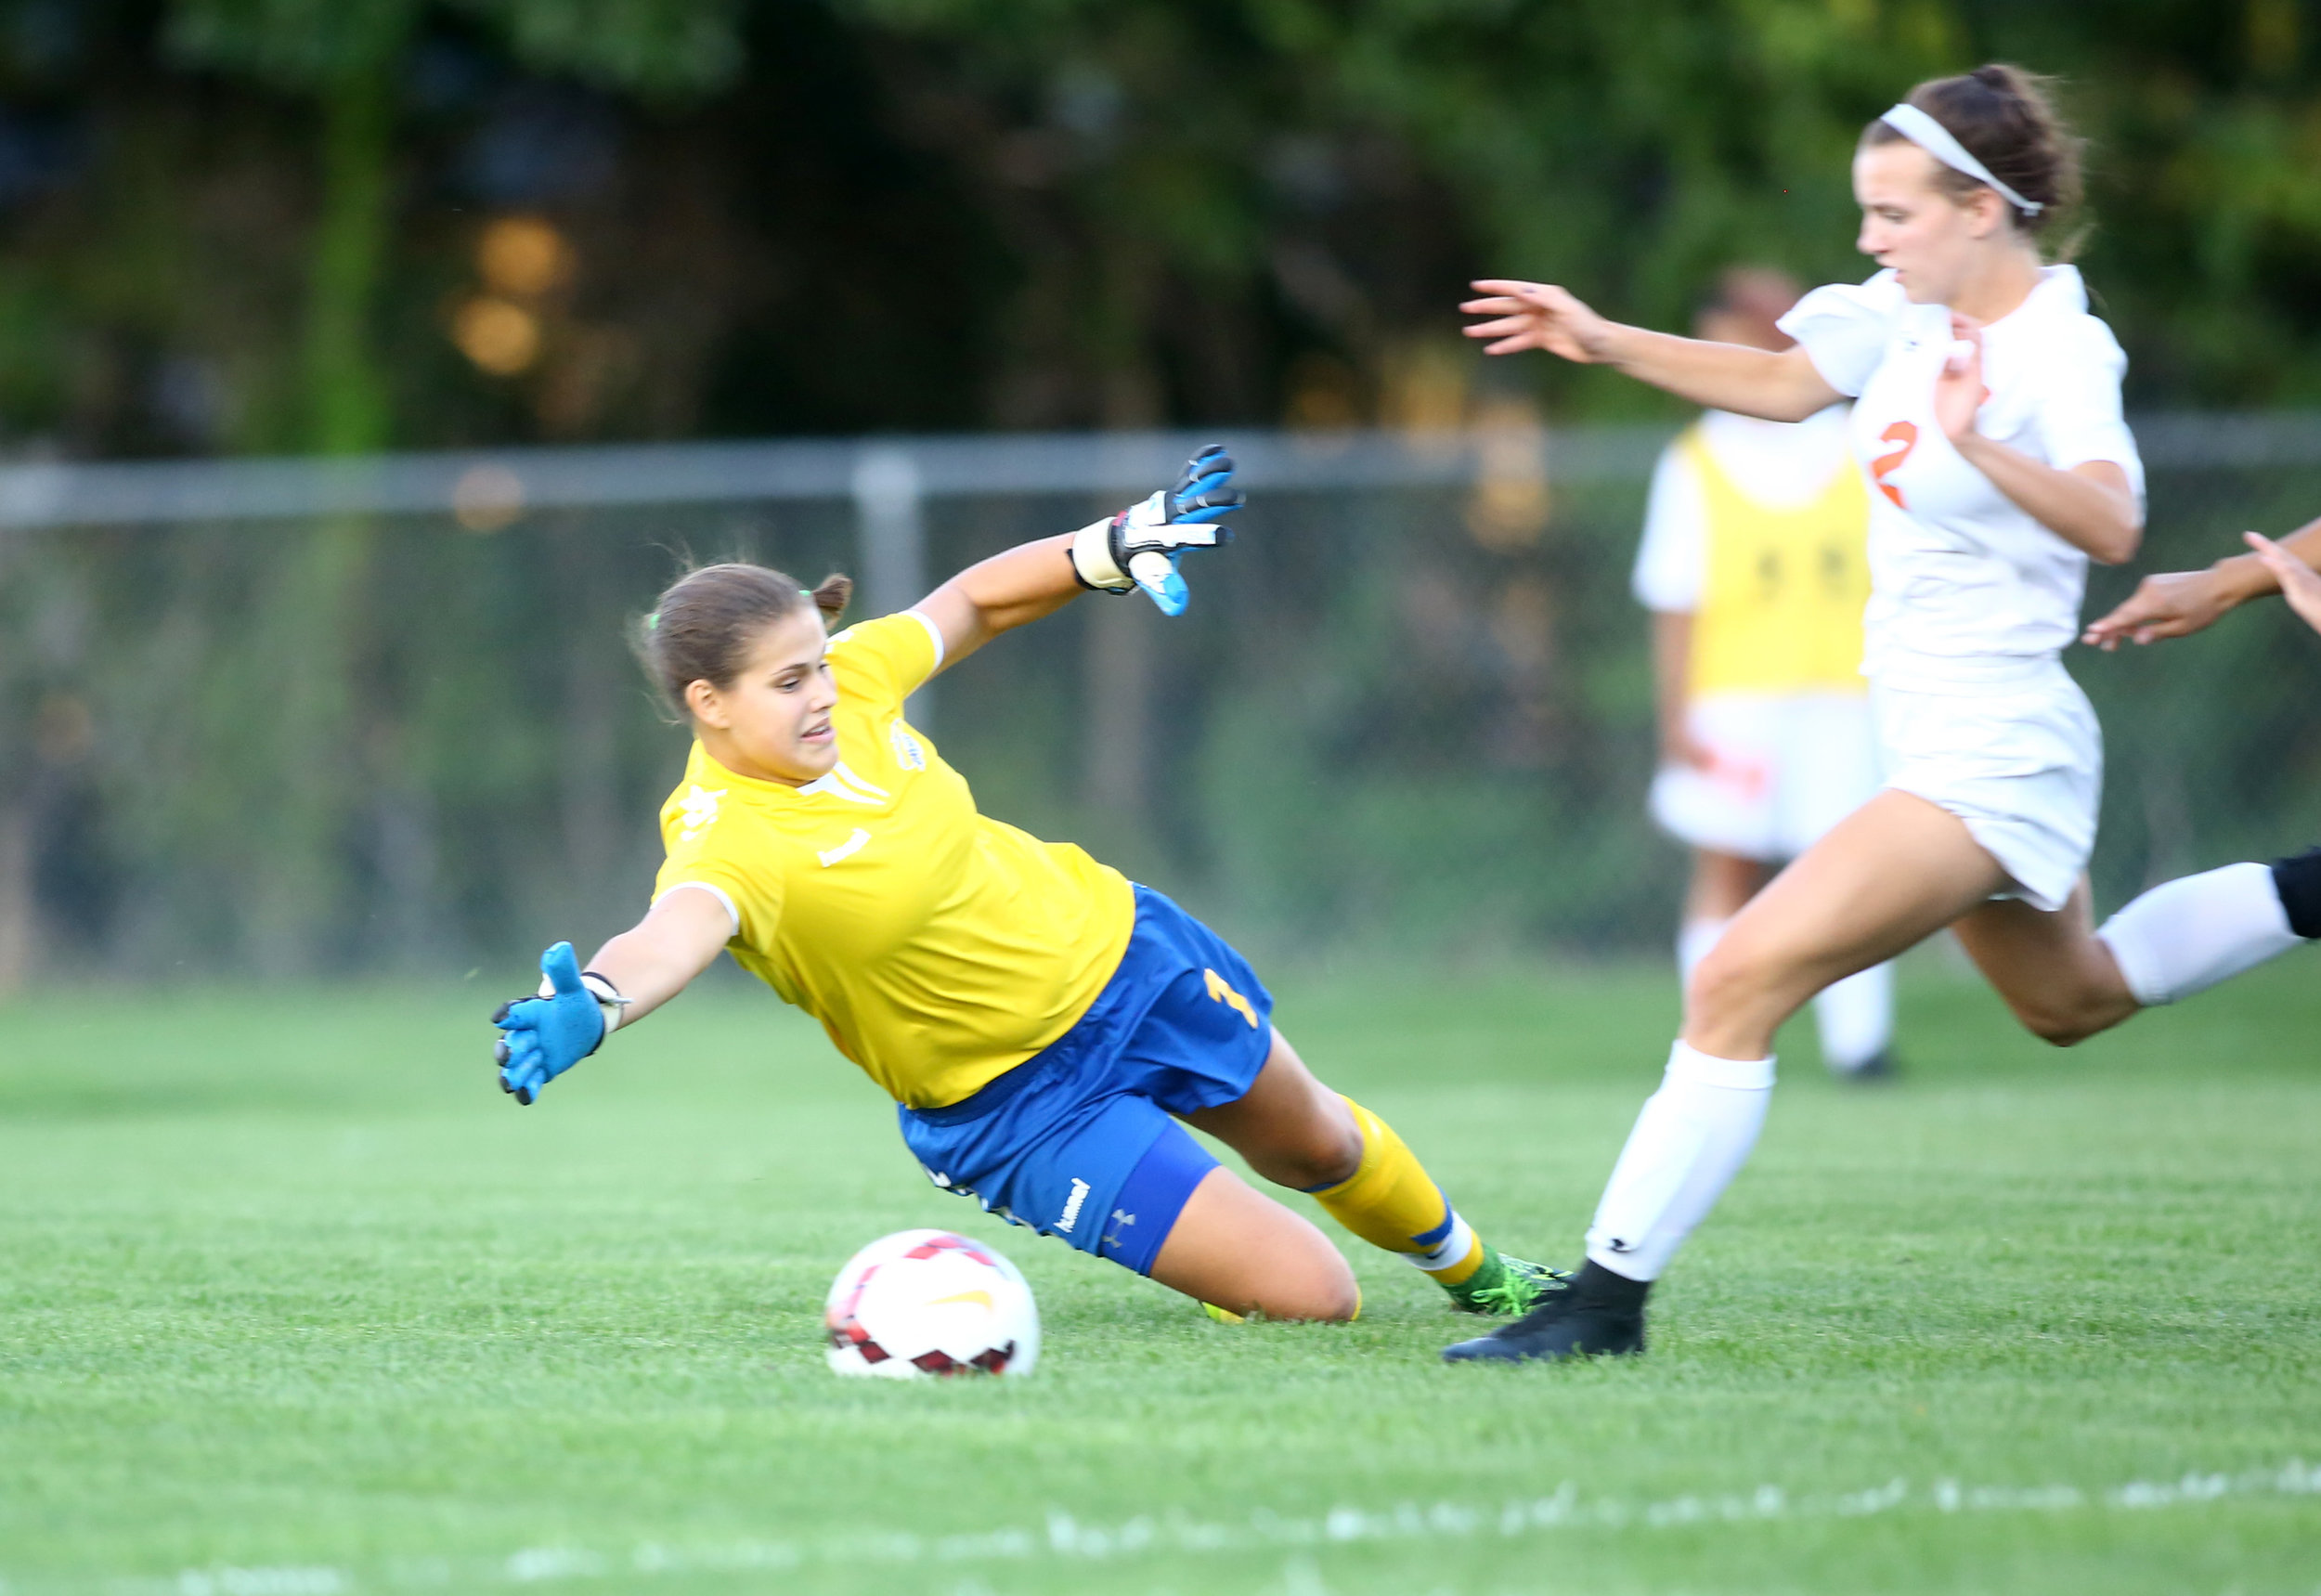 St. Ursula goalkeeper Katie Both dives in an attempt to block Southview High School forward Ellie Pool from scoring the first goal of the game at Southview High School in Sylvania on Monday, Sept. 19, 2016.